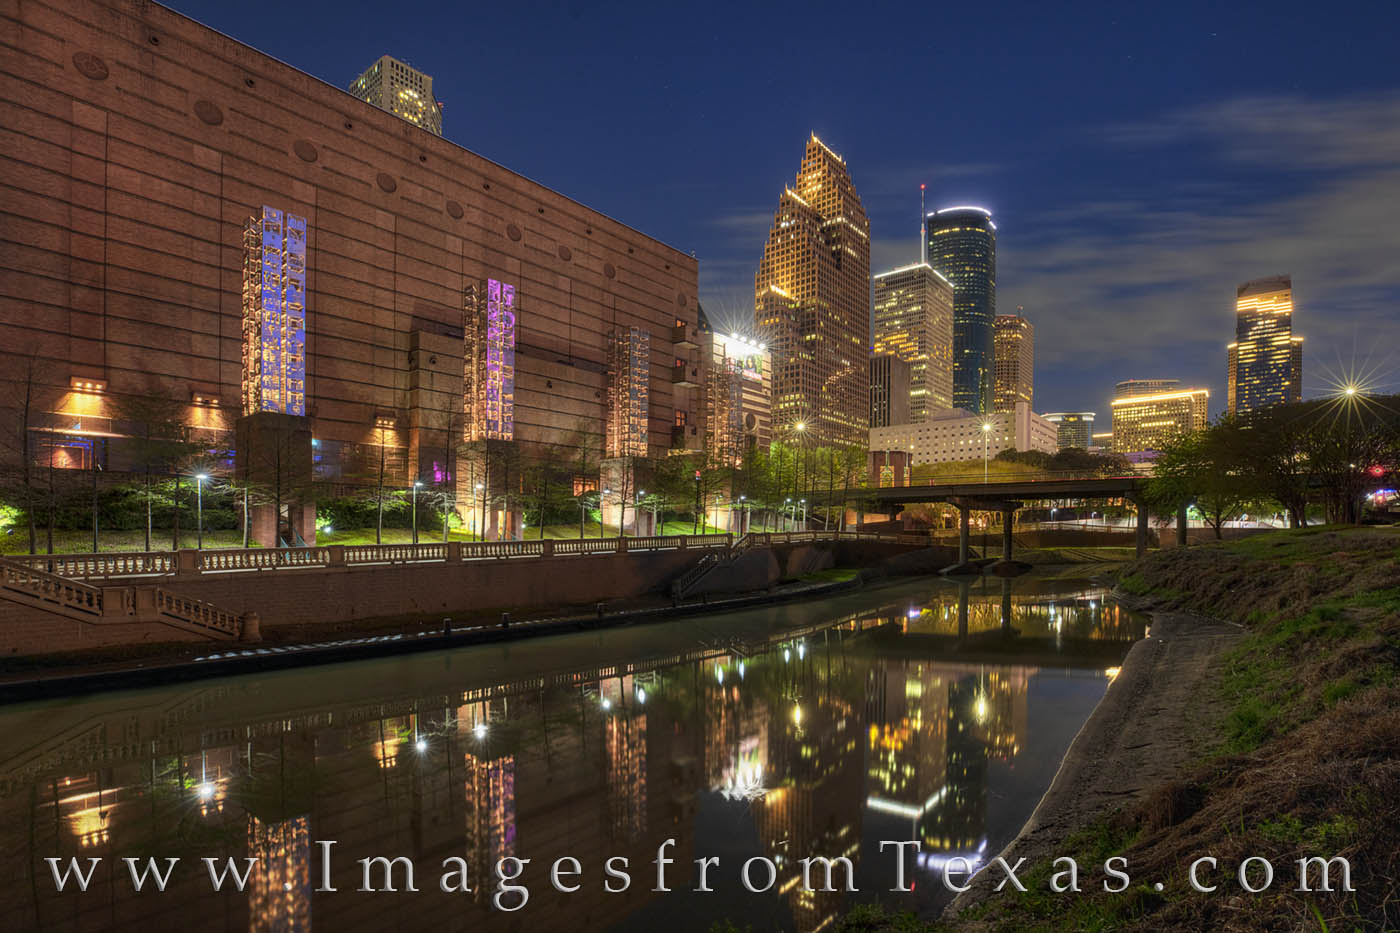 On an evening stroll from the White Oak Bayou to Buffalo Bayou, the pathway takes you by some delightful scenes, incuding this...